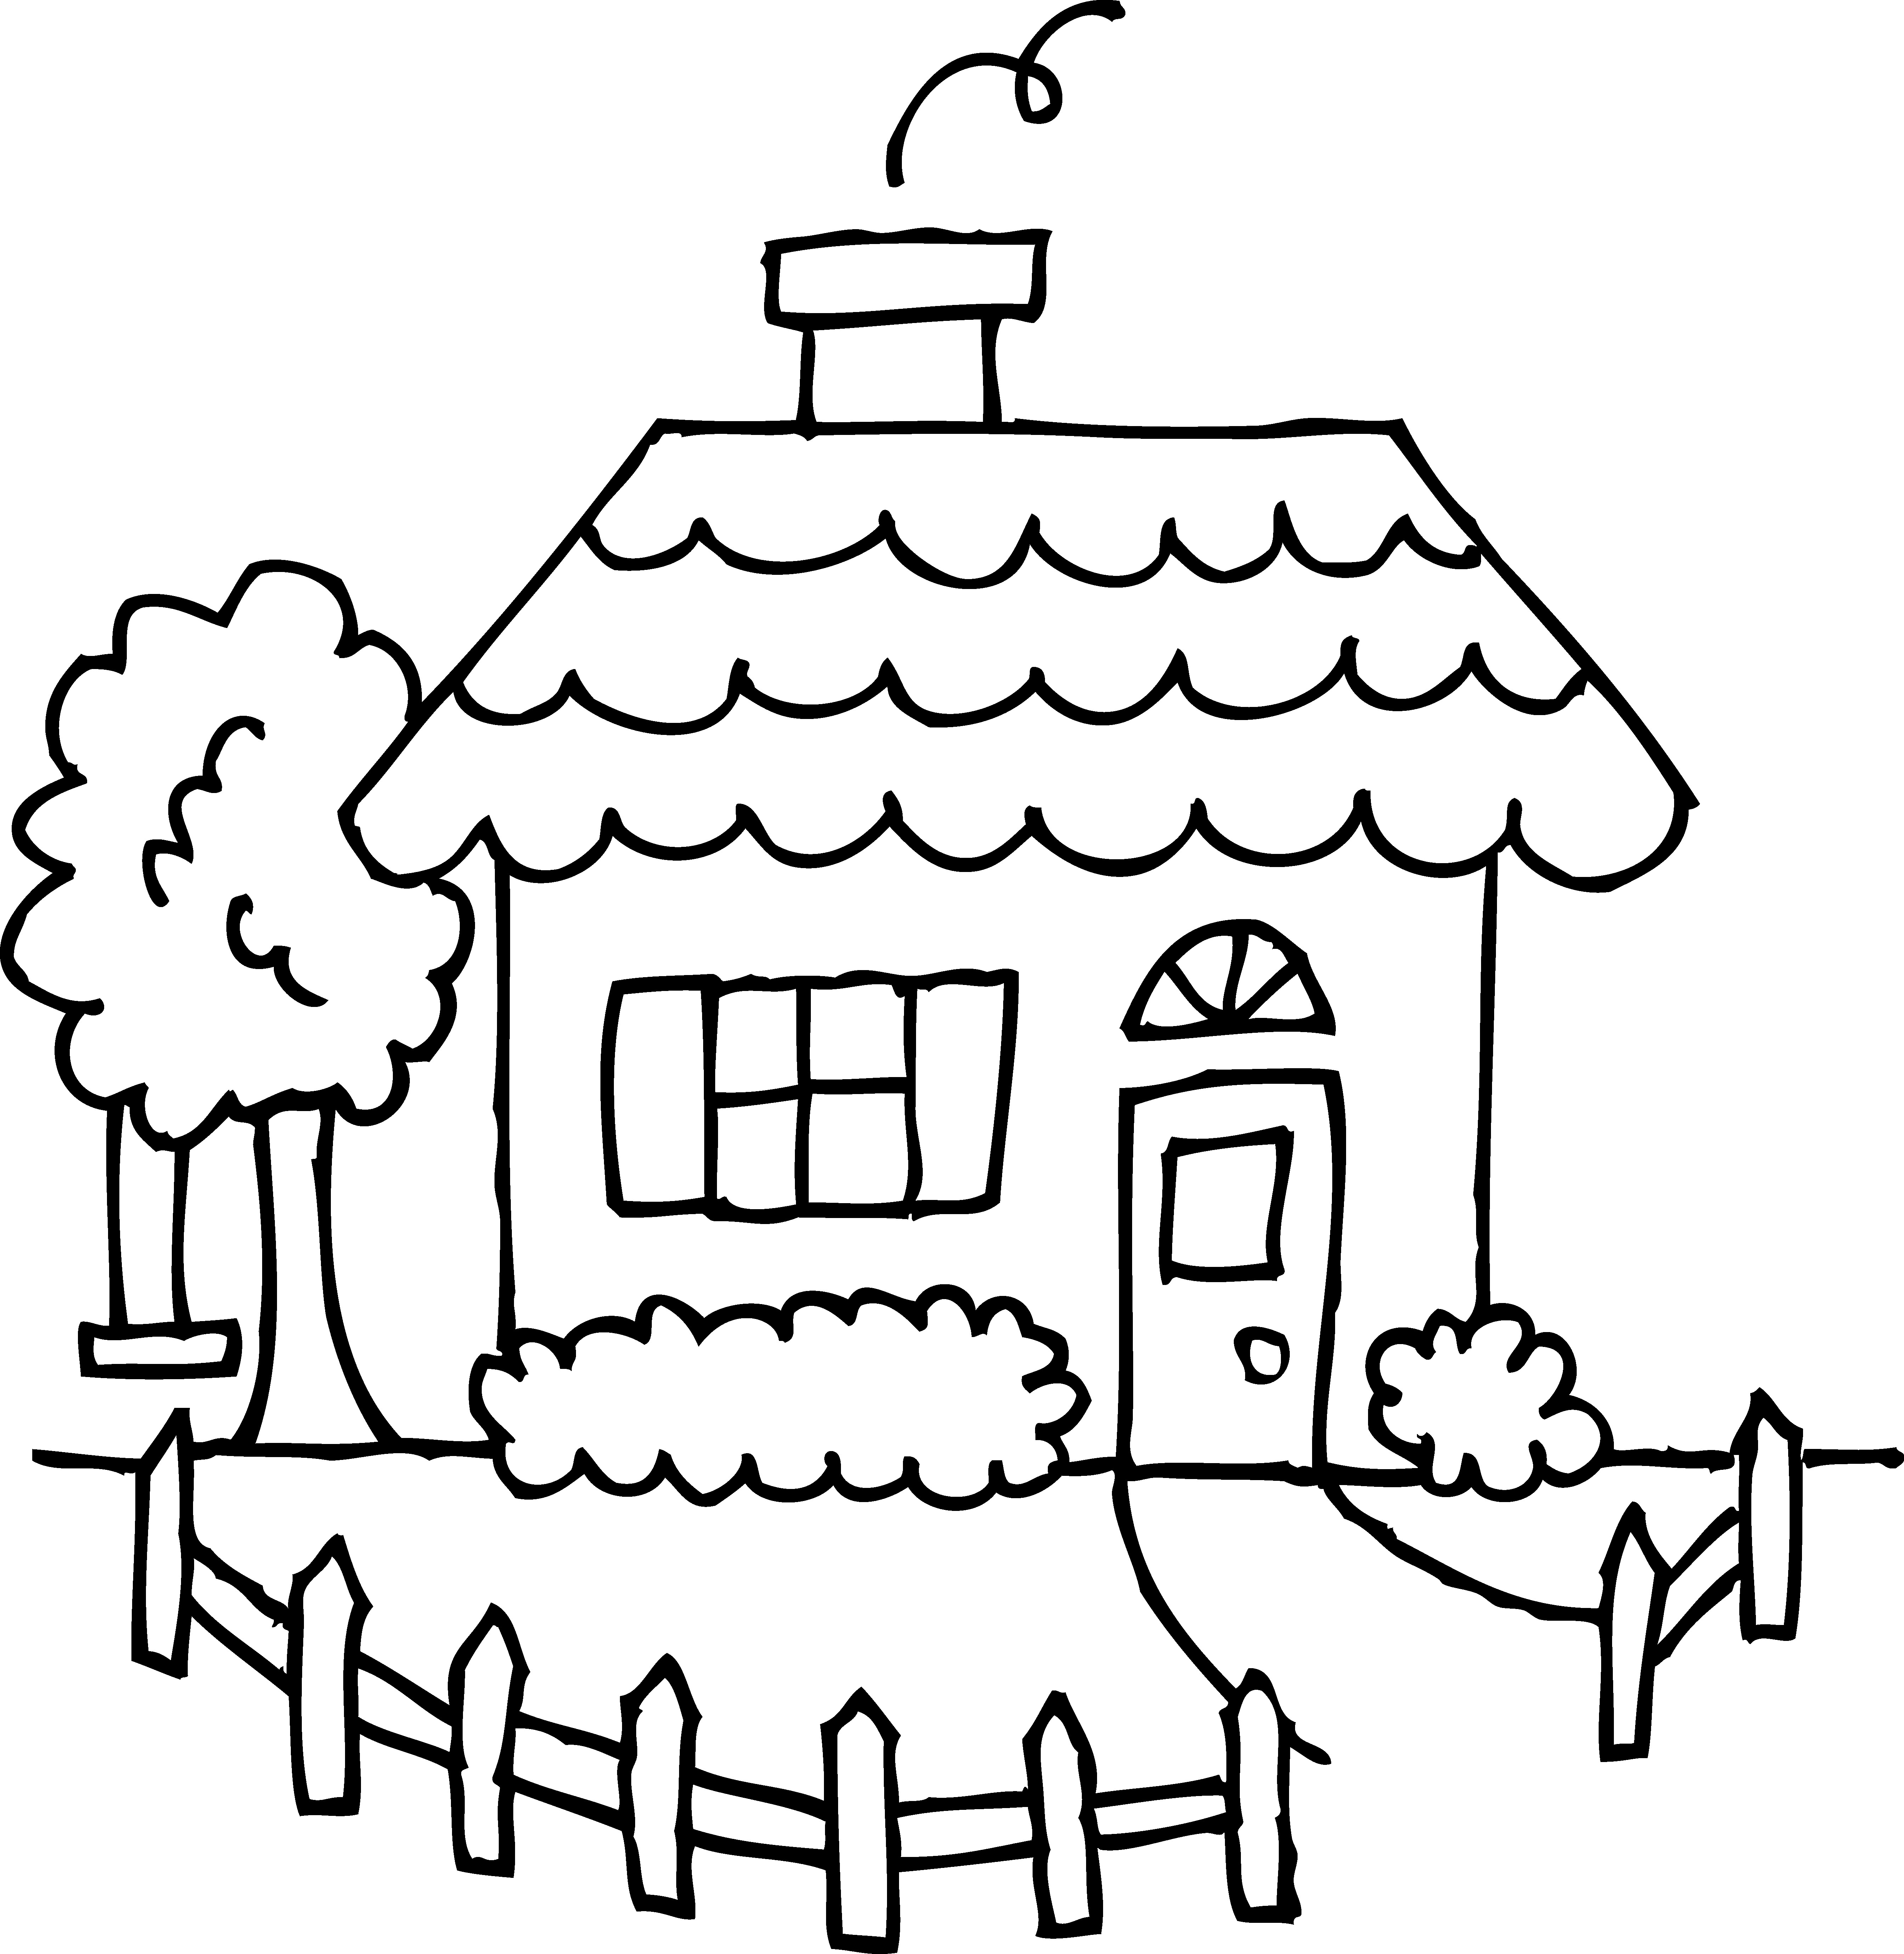 black and white house drawing at getdrawings com free for personal rh getdrawings com parts of the house black and white clipart black and white dog house clipart